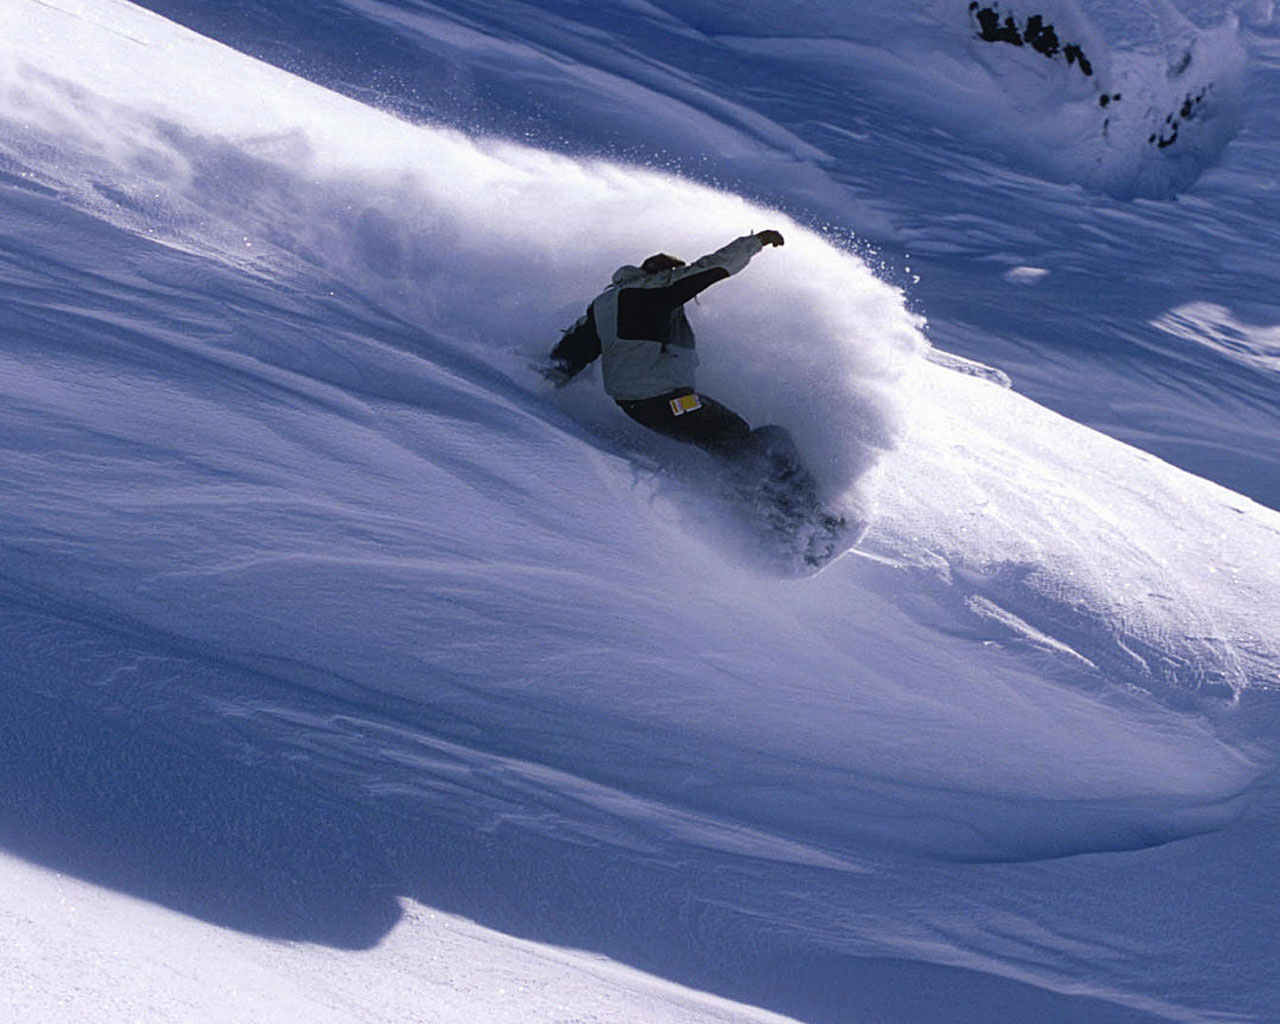 Mammoth Mountain Wallpaper #2 1280 x 800. Snowboarding Wallpapers